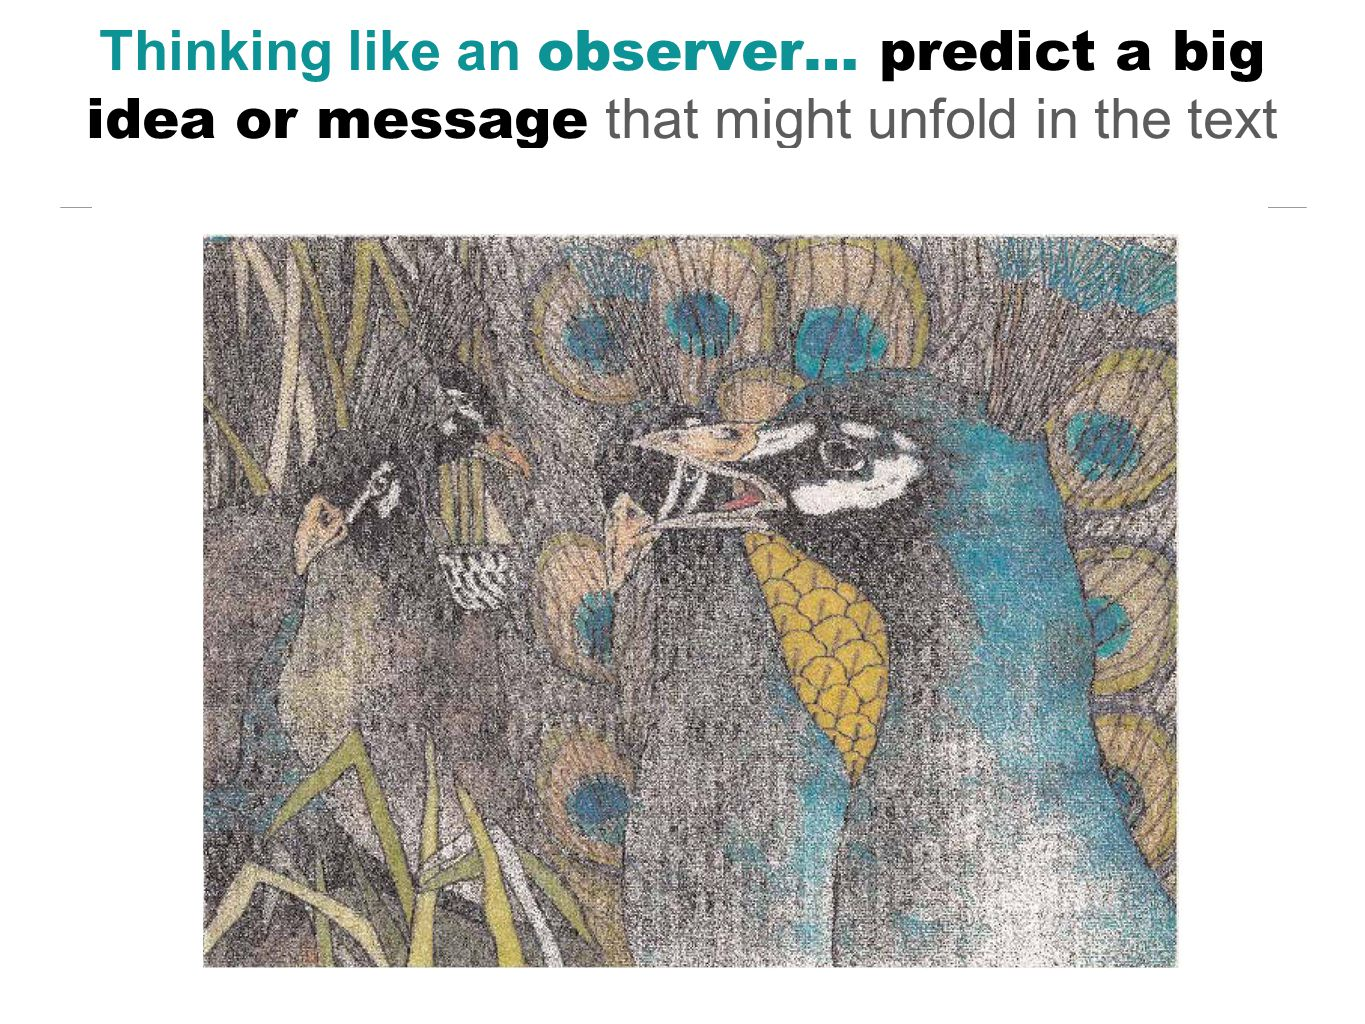 Thinking like an observer… predict a big idea or message that might unfold in the text